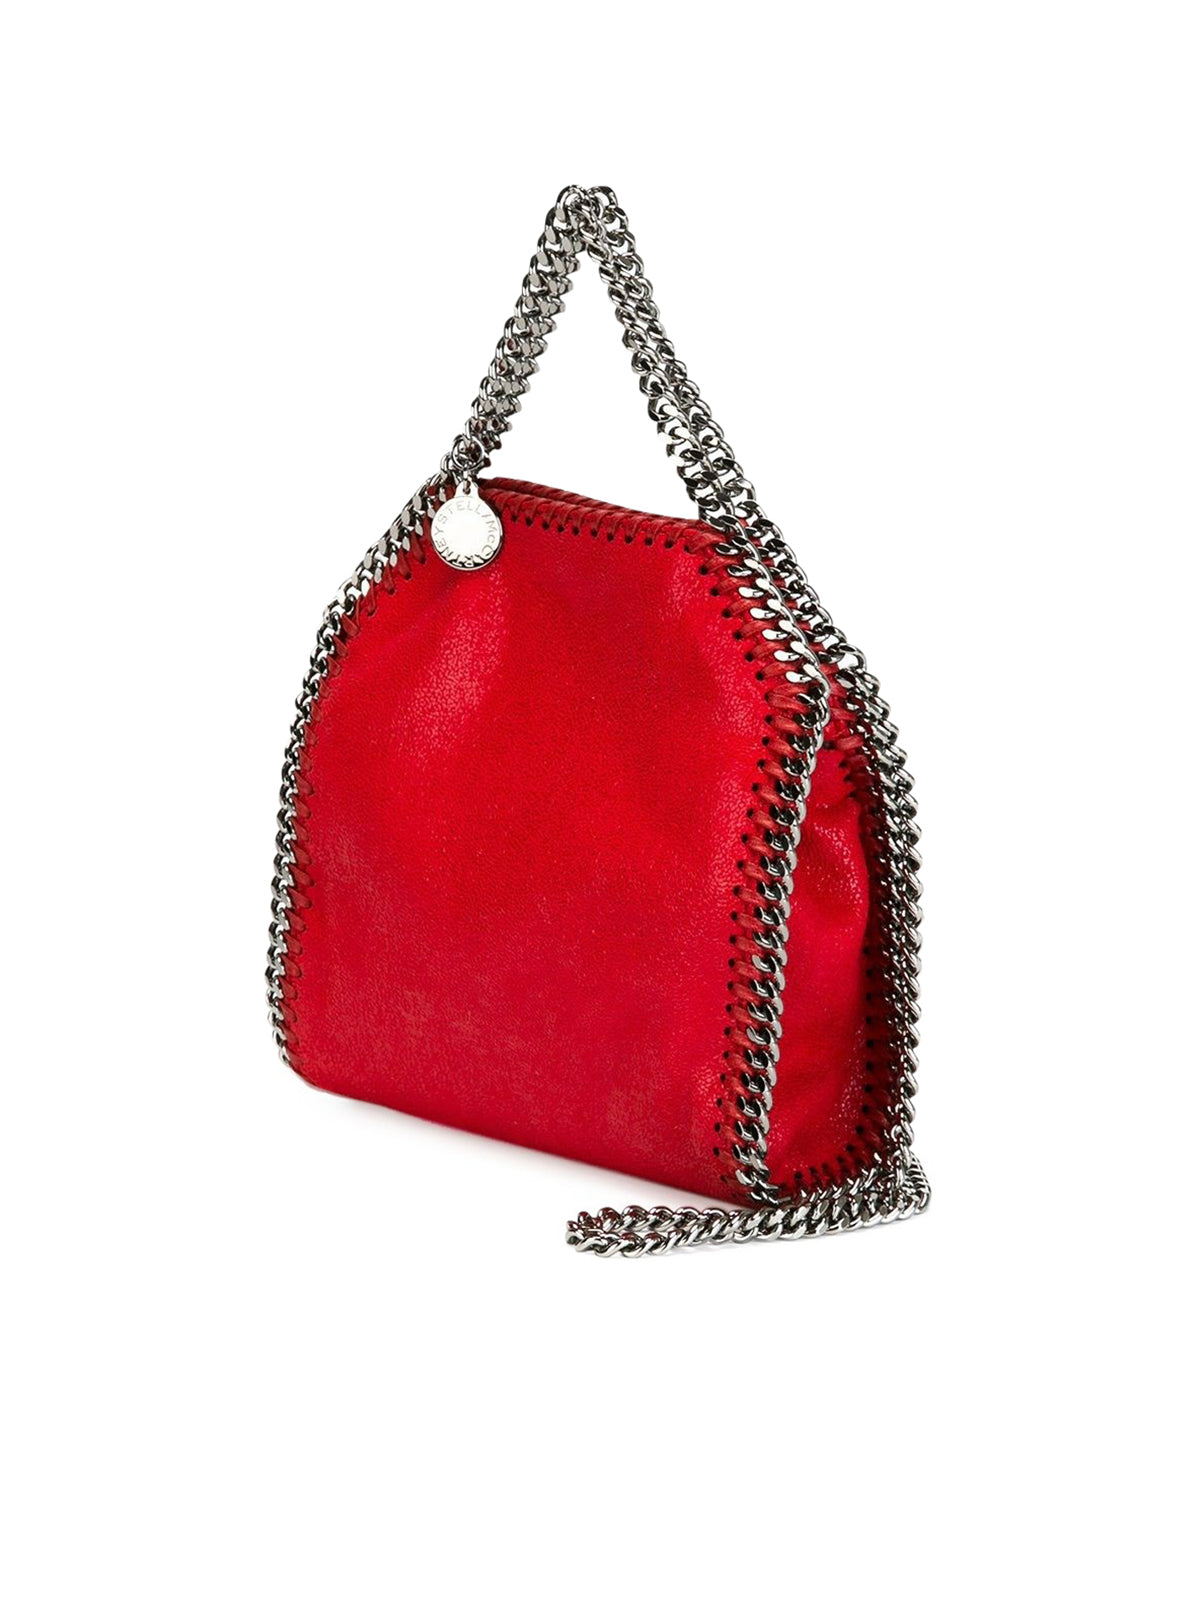 MINI BAG FALABELLA WITH 3 CHAINS